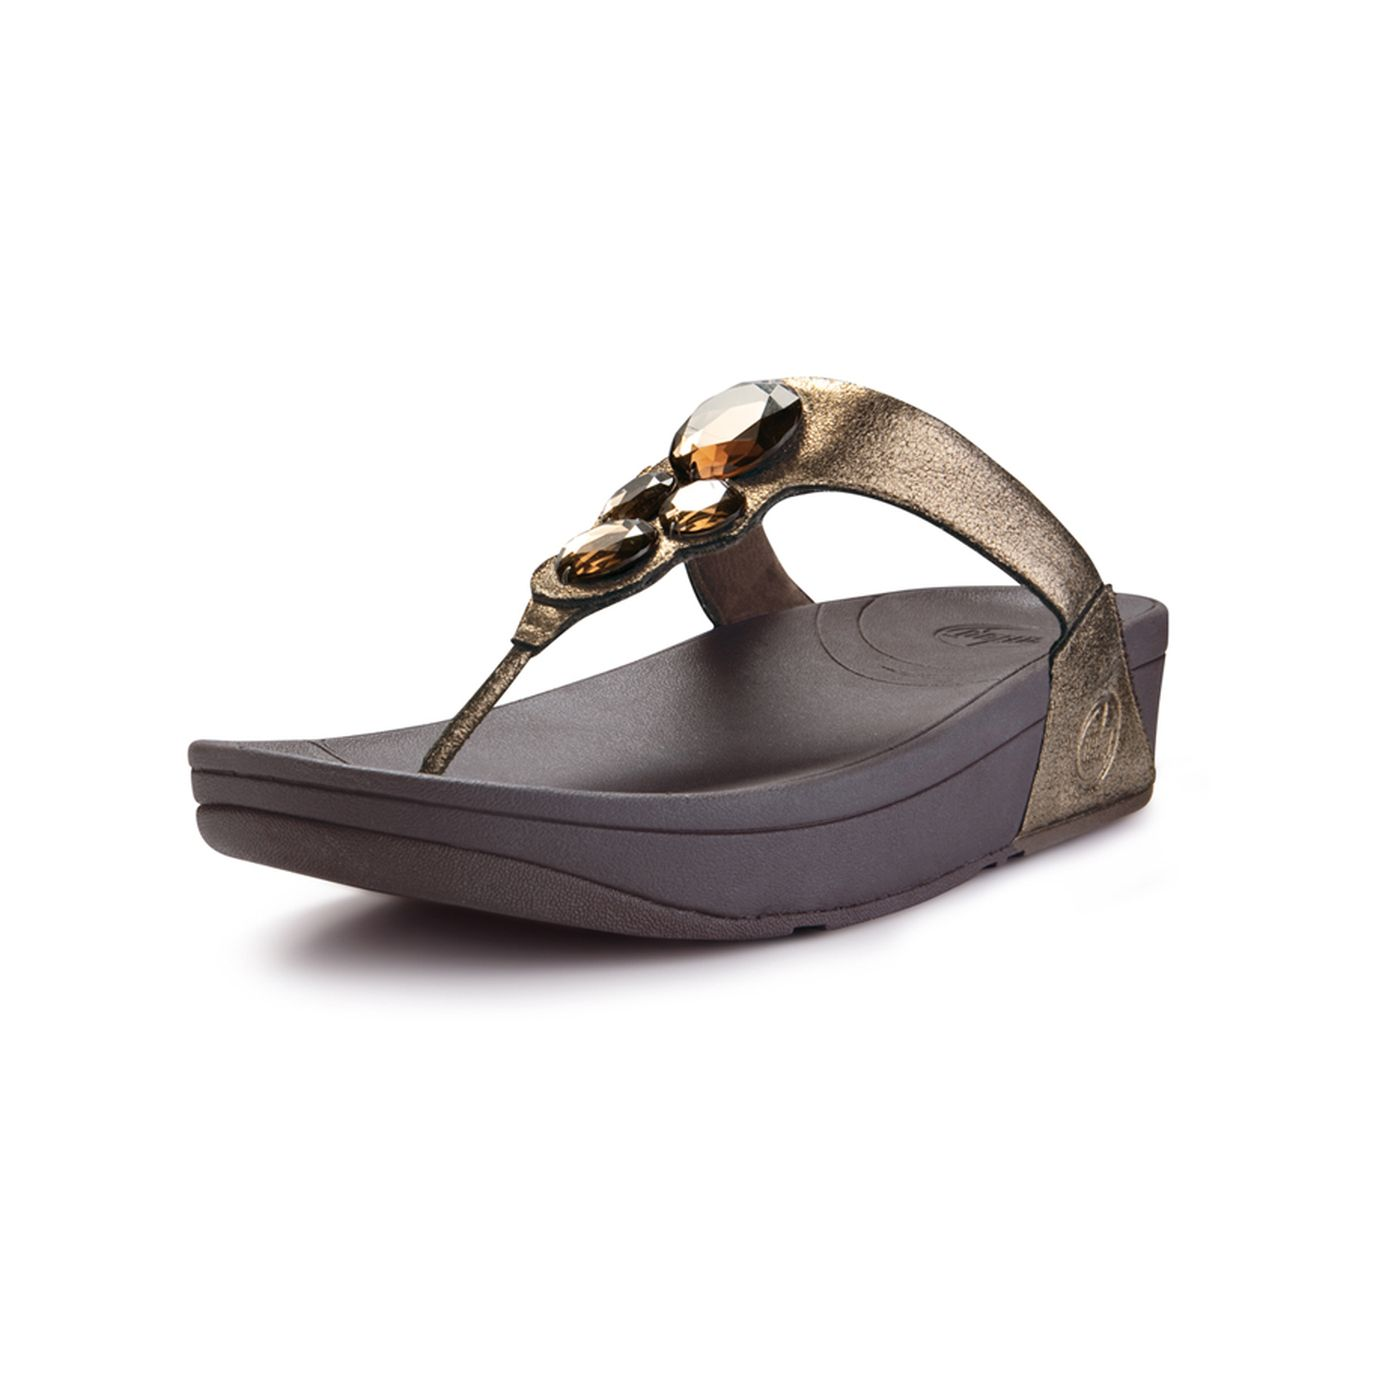 fitflop lunetta sandals  pale bronze size 8